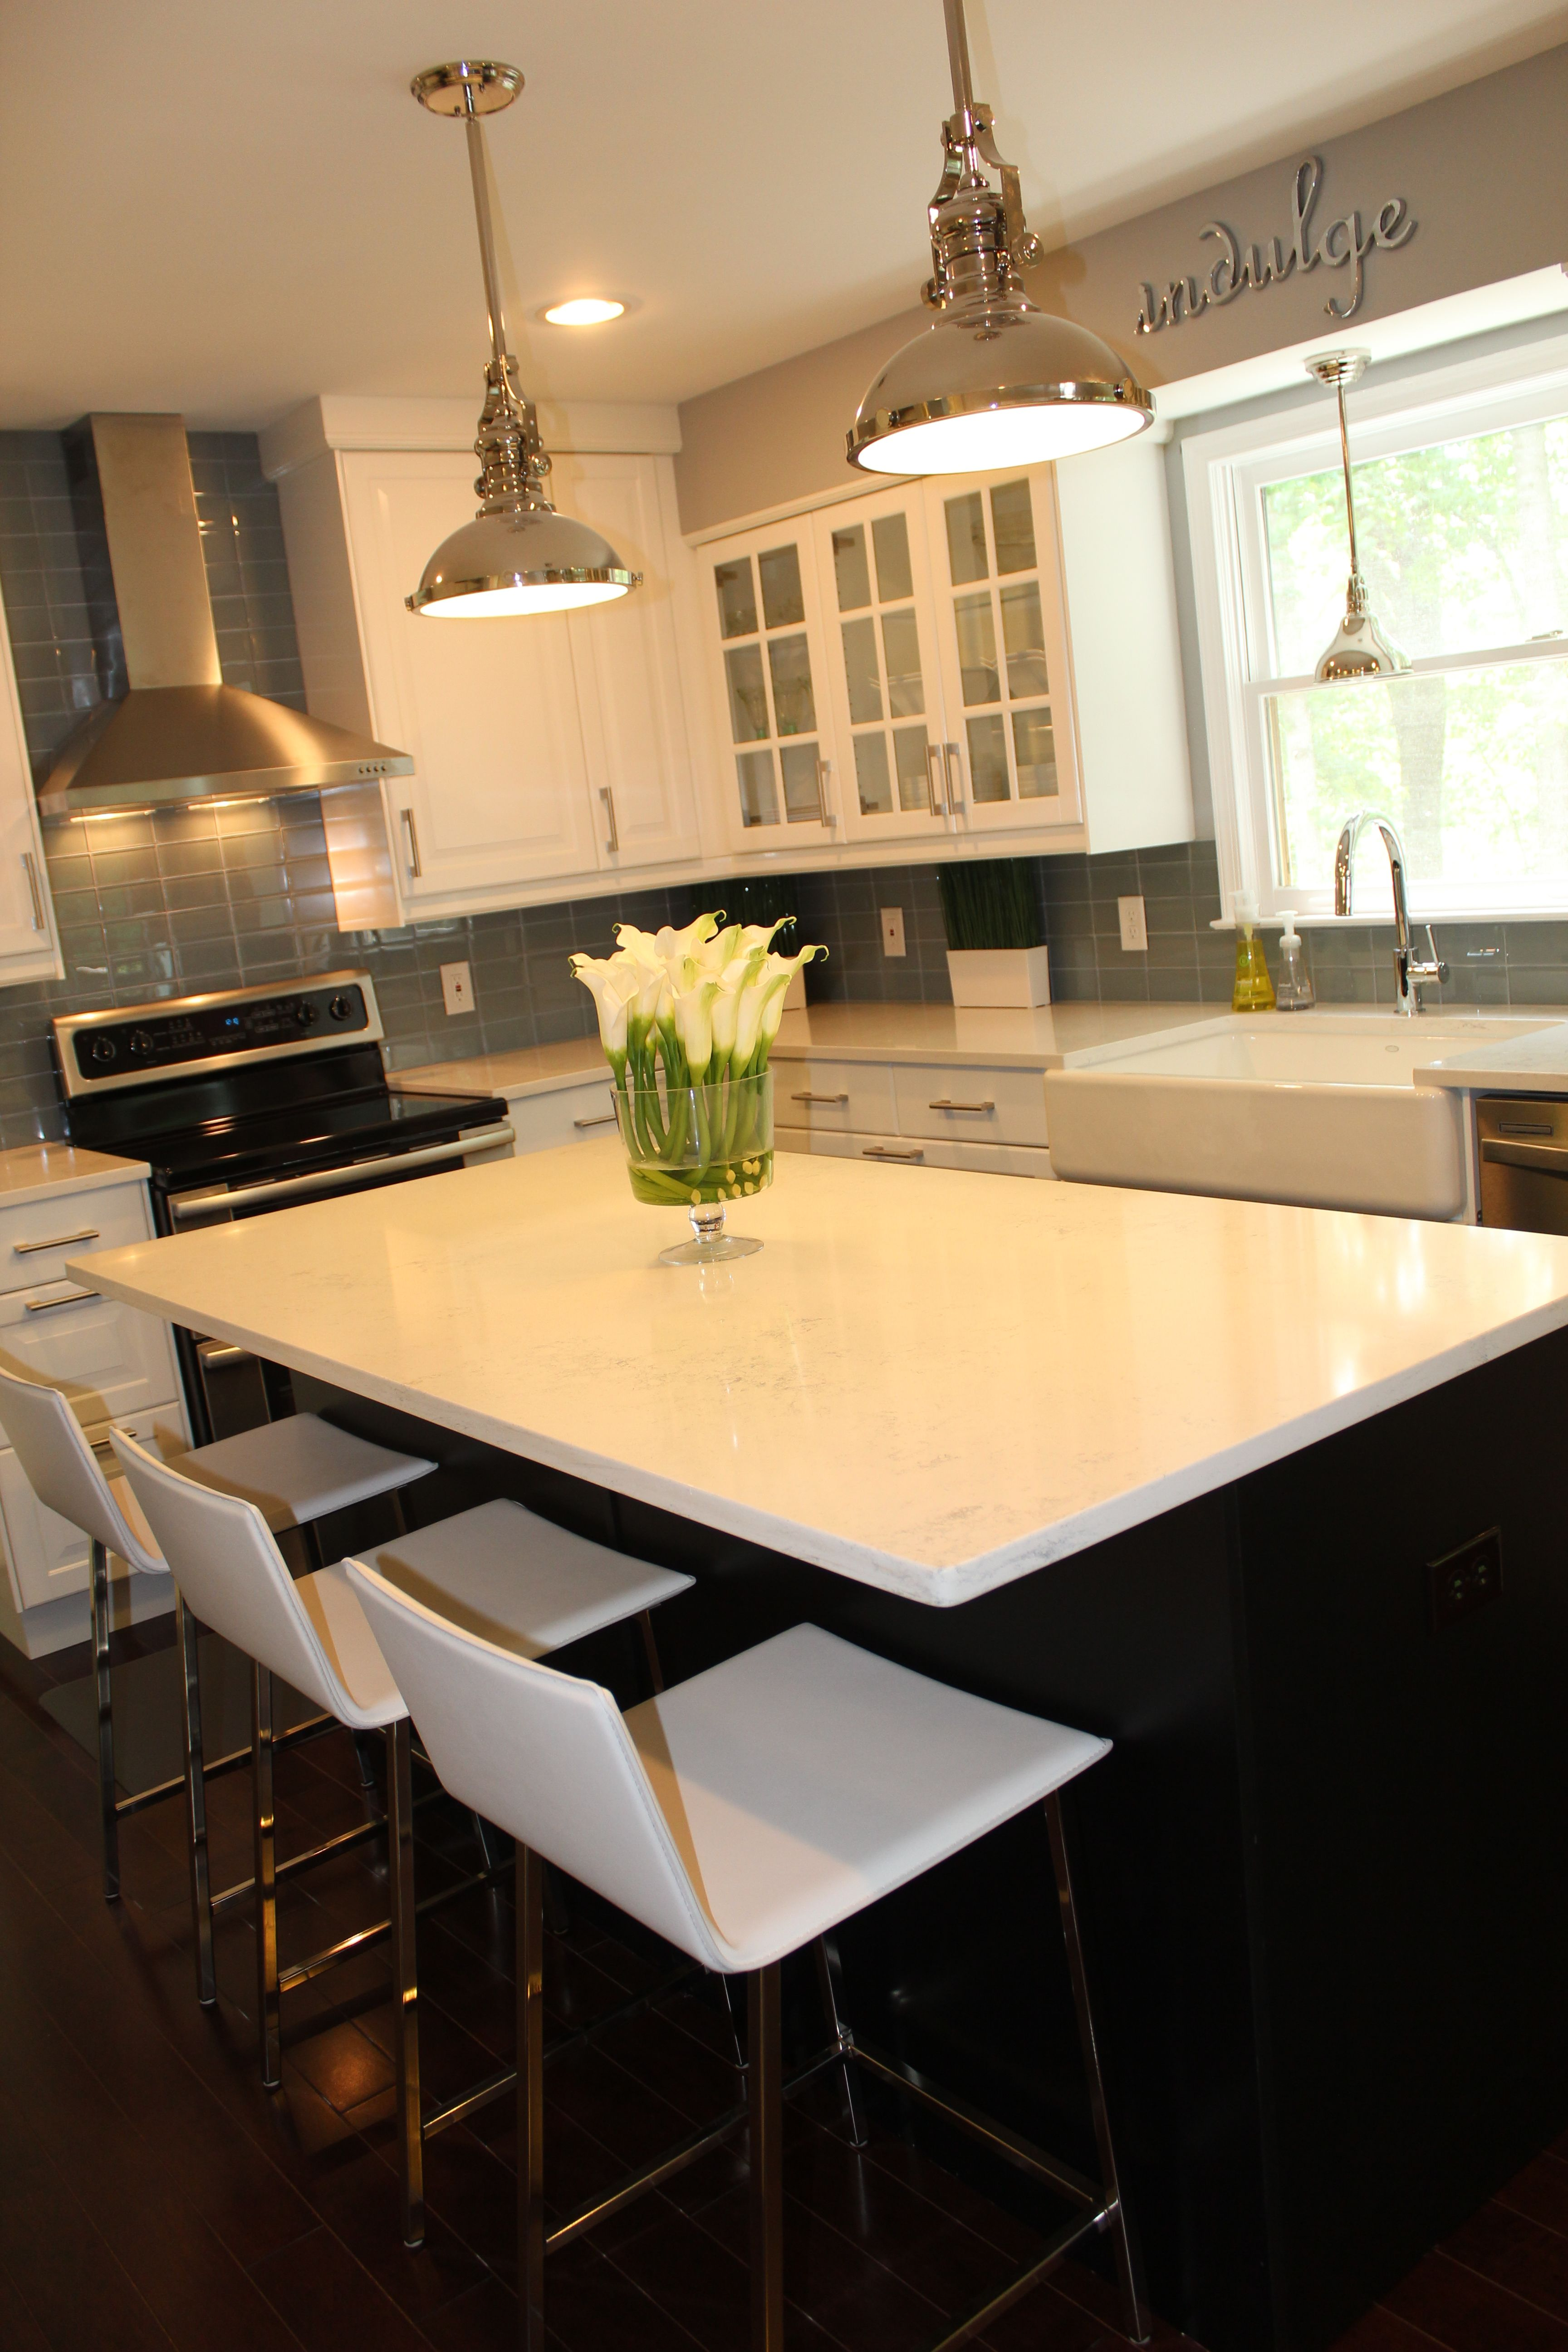 Our New Kitchen Pic 2 Cost Of Countertops Kitchen Layout